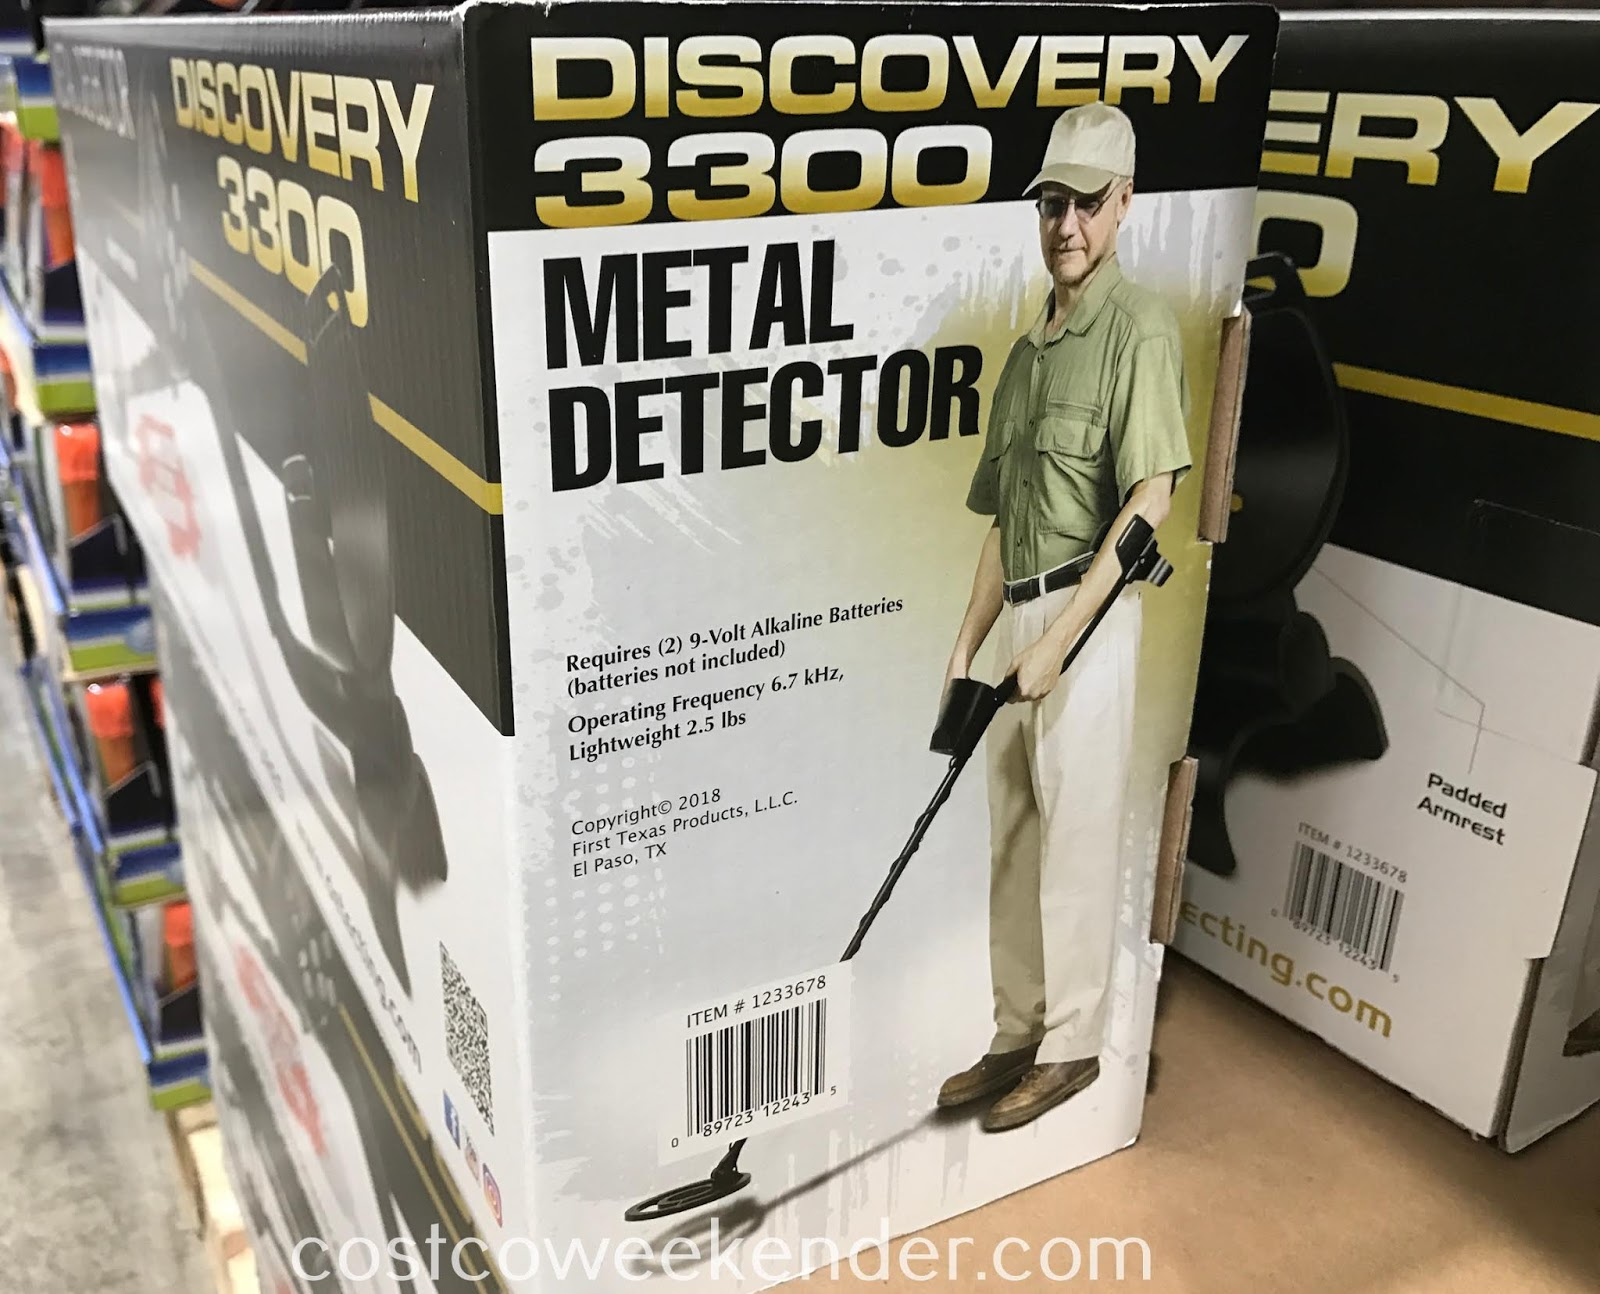 Costco 1233678 - Find unique objects below our feet with the Bounty Hunter Discovery 3300 Metal Detector